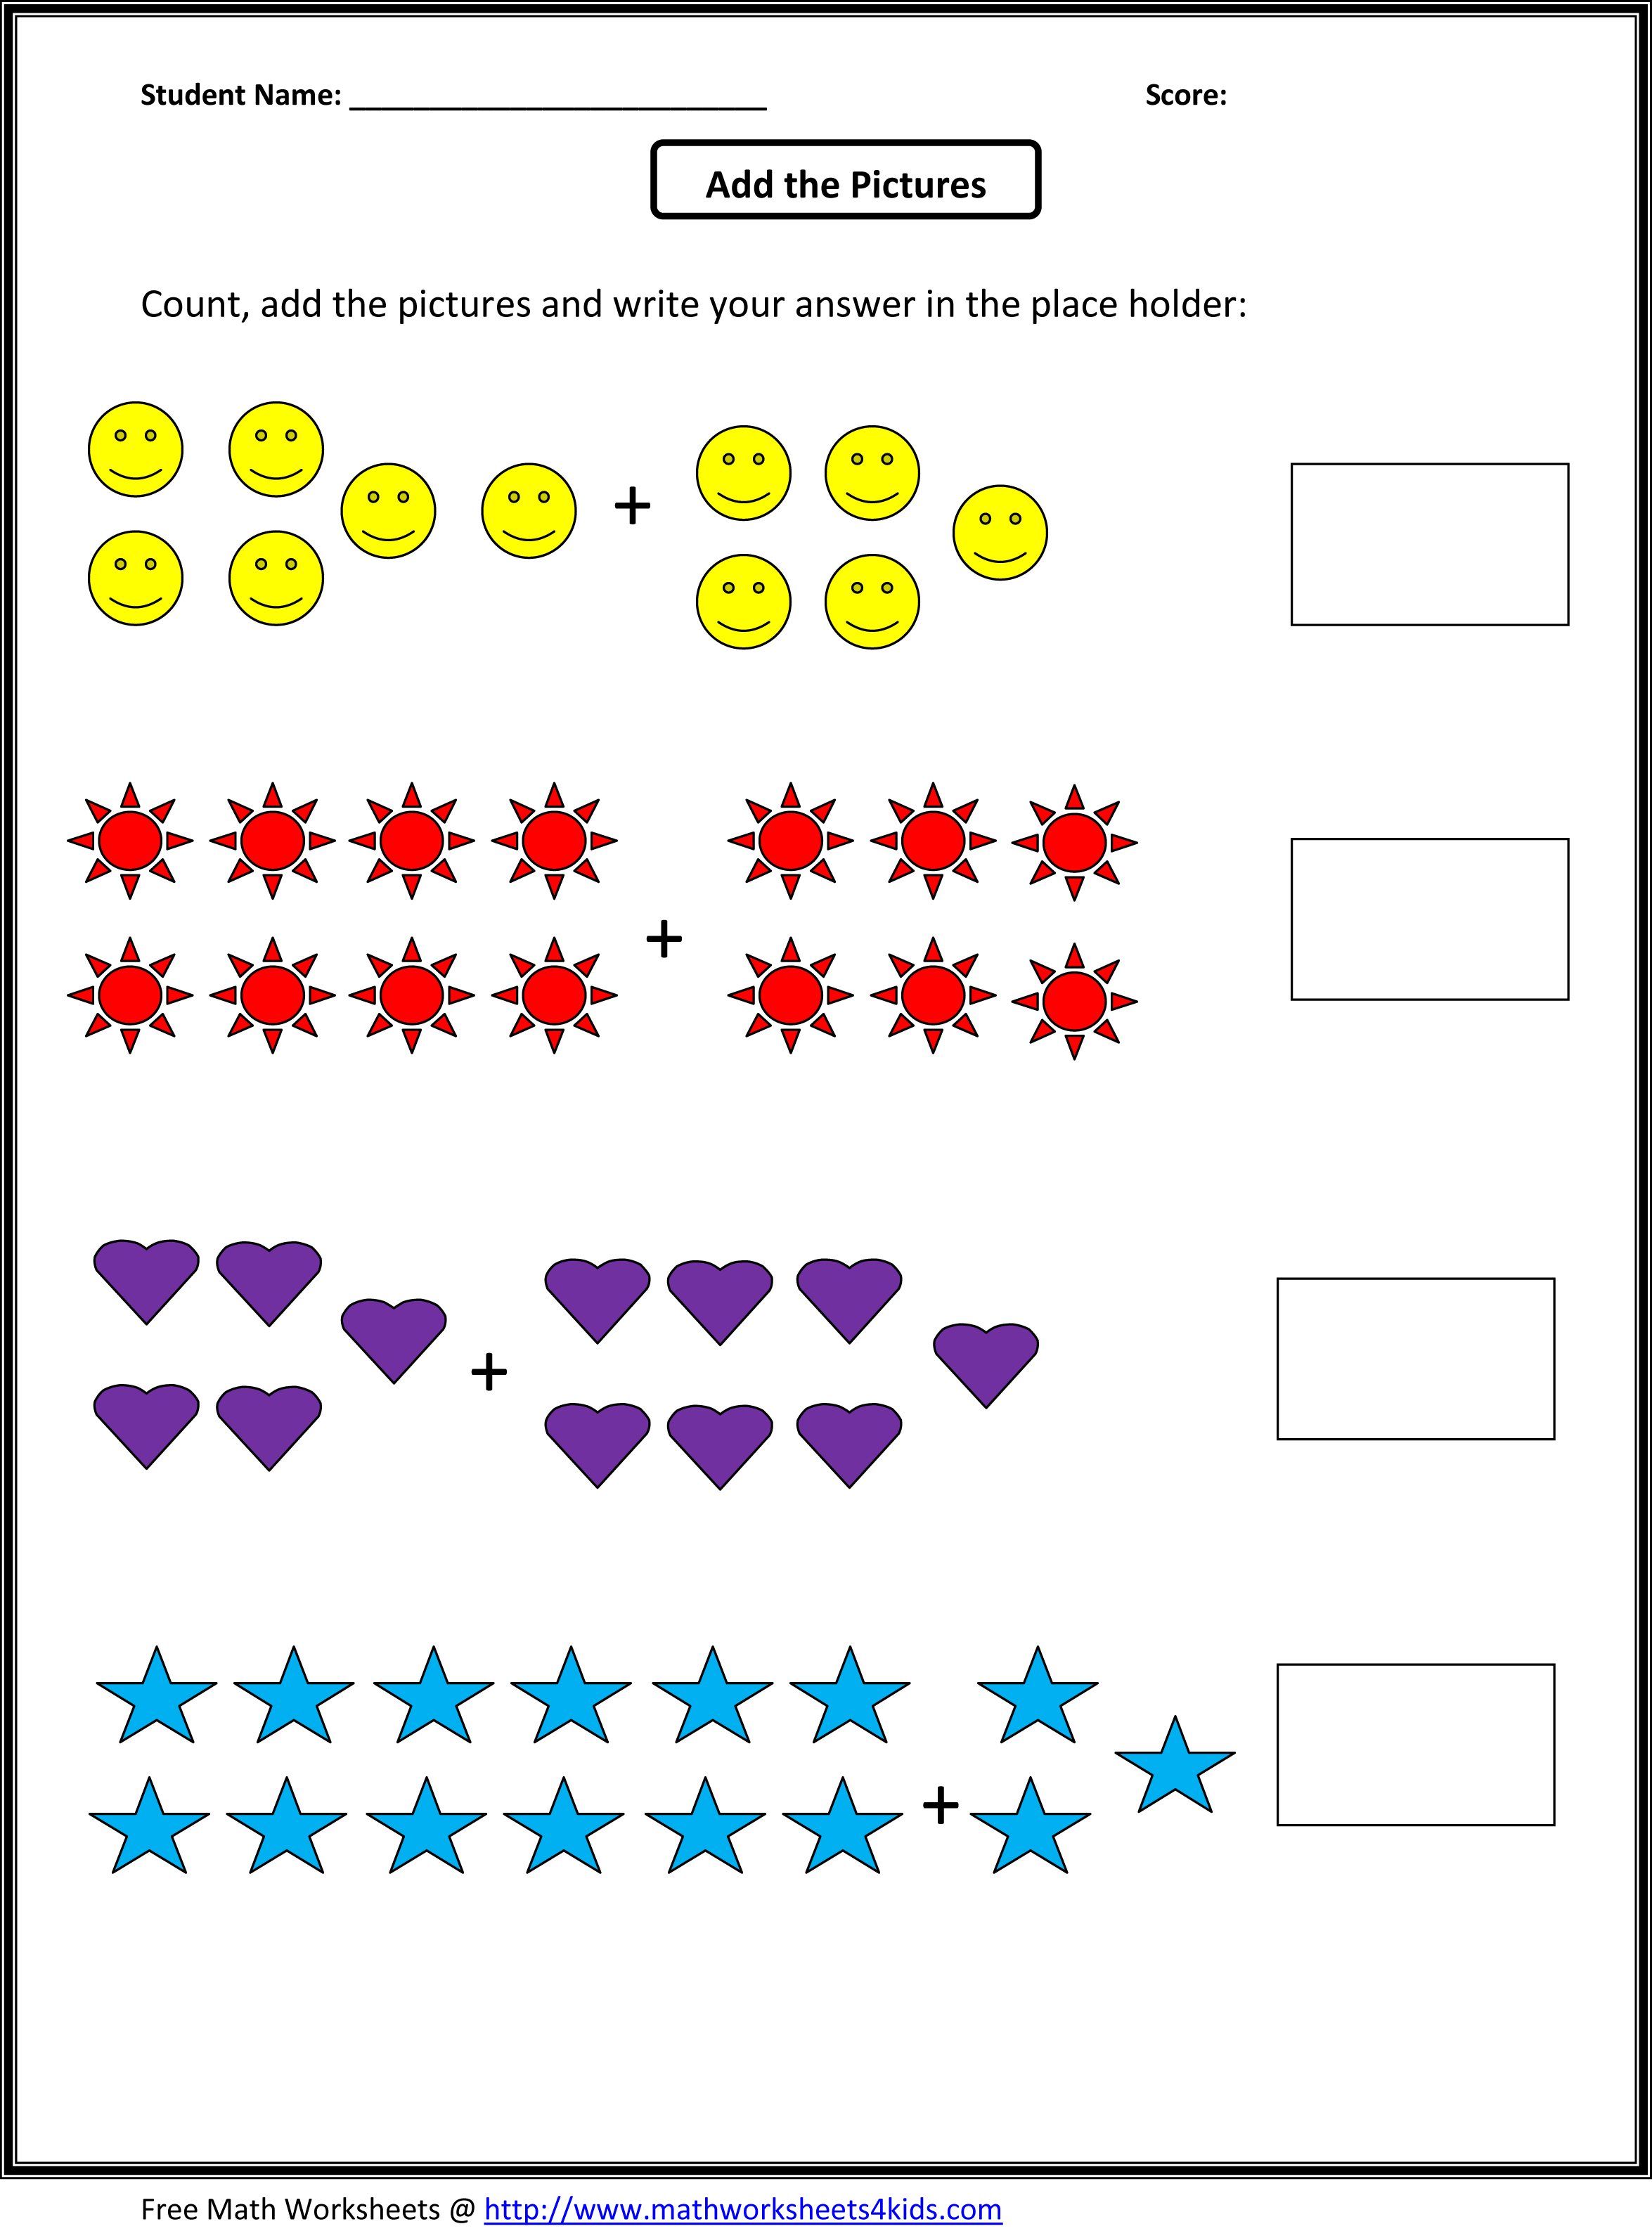 Proatmealus  Unusual Grade  Maths Worksheet  Reocurent With Inspiring Math Worksheets For St Grade Free  Reocurent With Comely Geometry Honors Worksheets Also Cinquain Poem Worksheet In Addition Worksheet On Distributive Property And Convert Metric Units Worksheet As Well As Free Middle School Science Worksheets Additionally Box Top Worksheets From Reocurentcom With Proatmealus  Inspiring Grade  Maths Worksheet  Reocurent With Comely Math Worksheets For St Grade Free  Reocurent And Unusual Geometry Honors Worksheets Also Cinquain Poem Worksheet In Addition Worksheet On Distributive Property From Reocurentcom